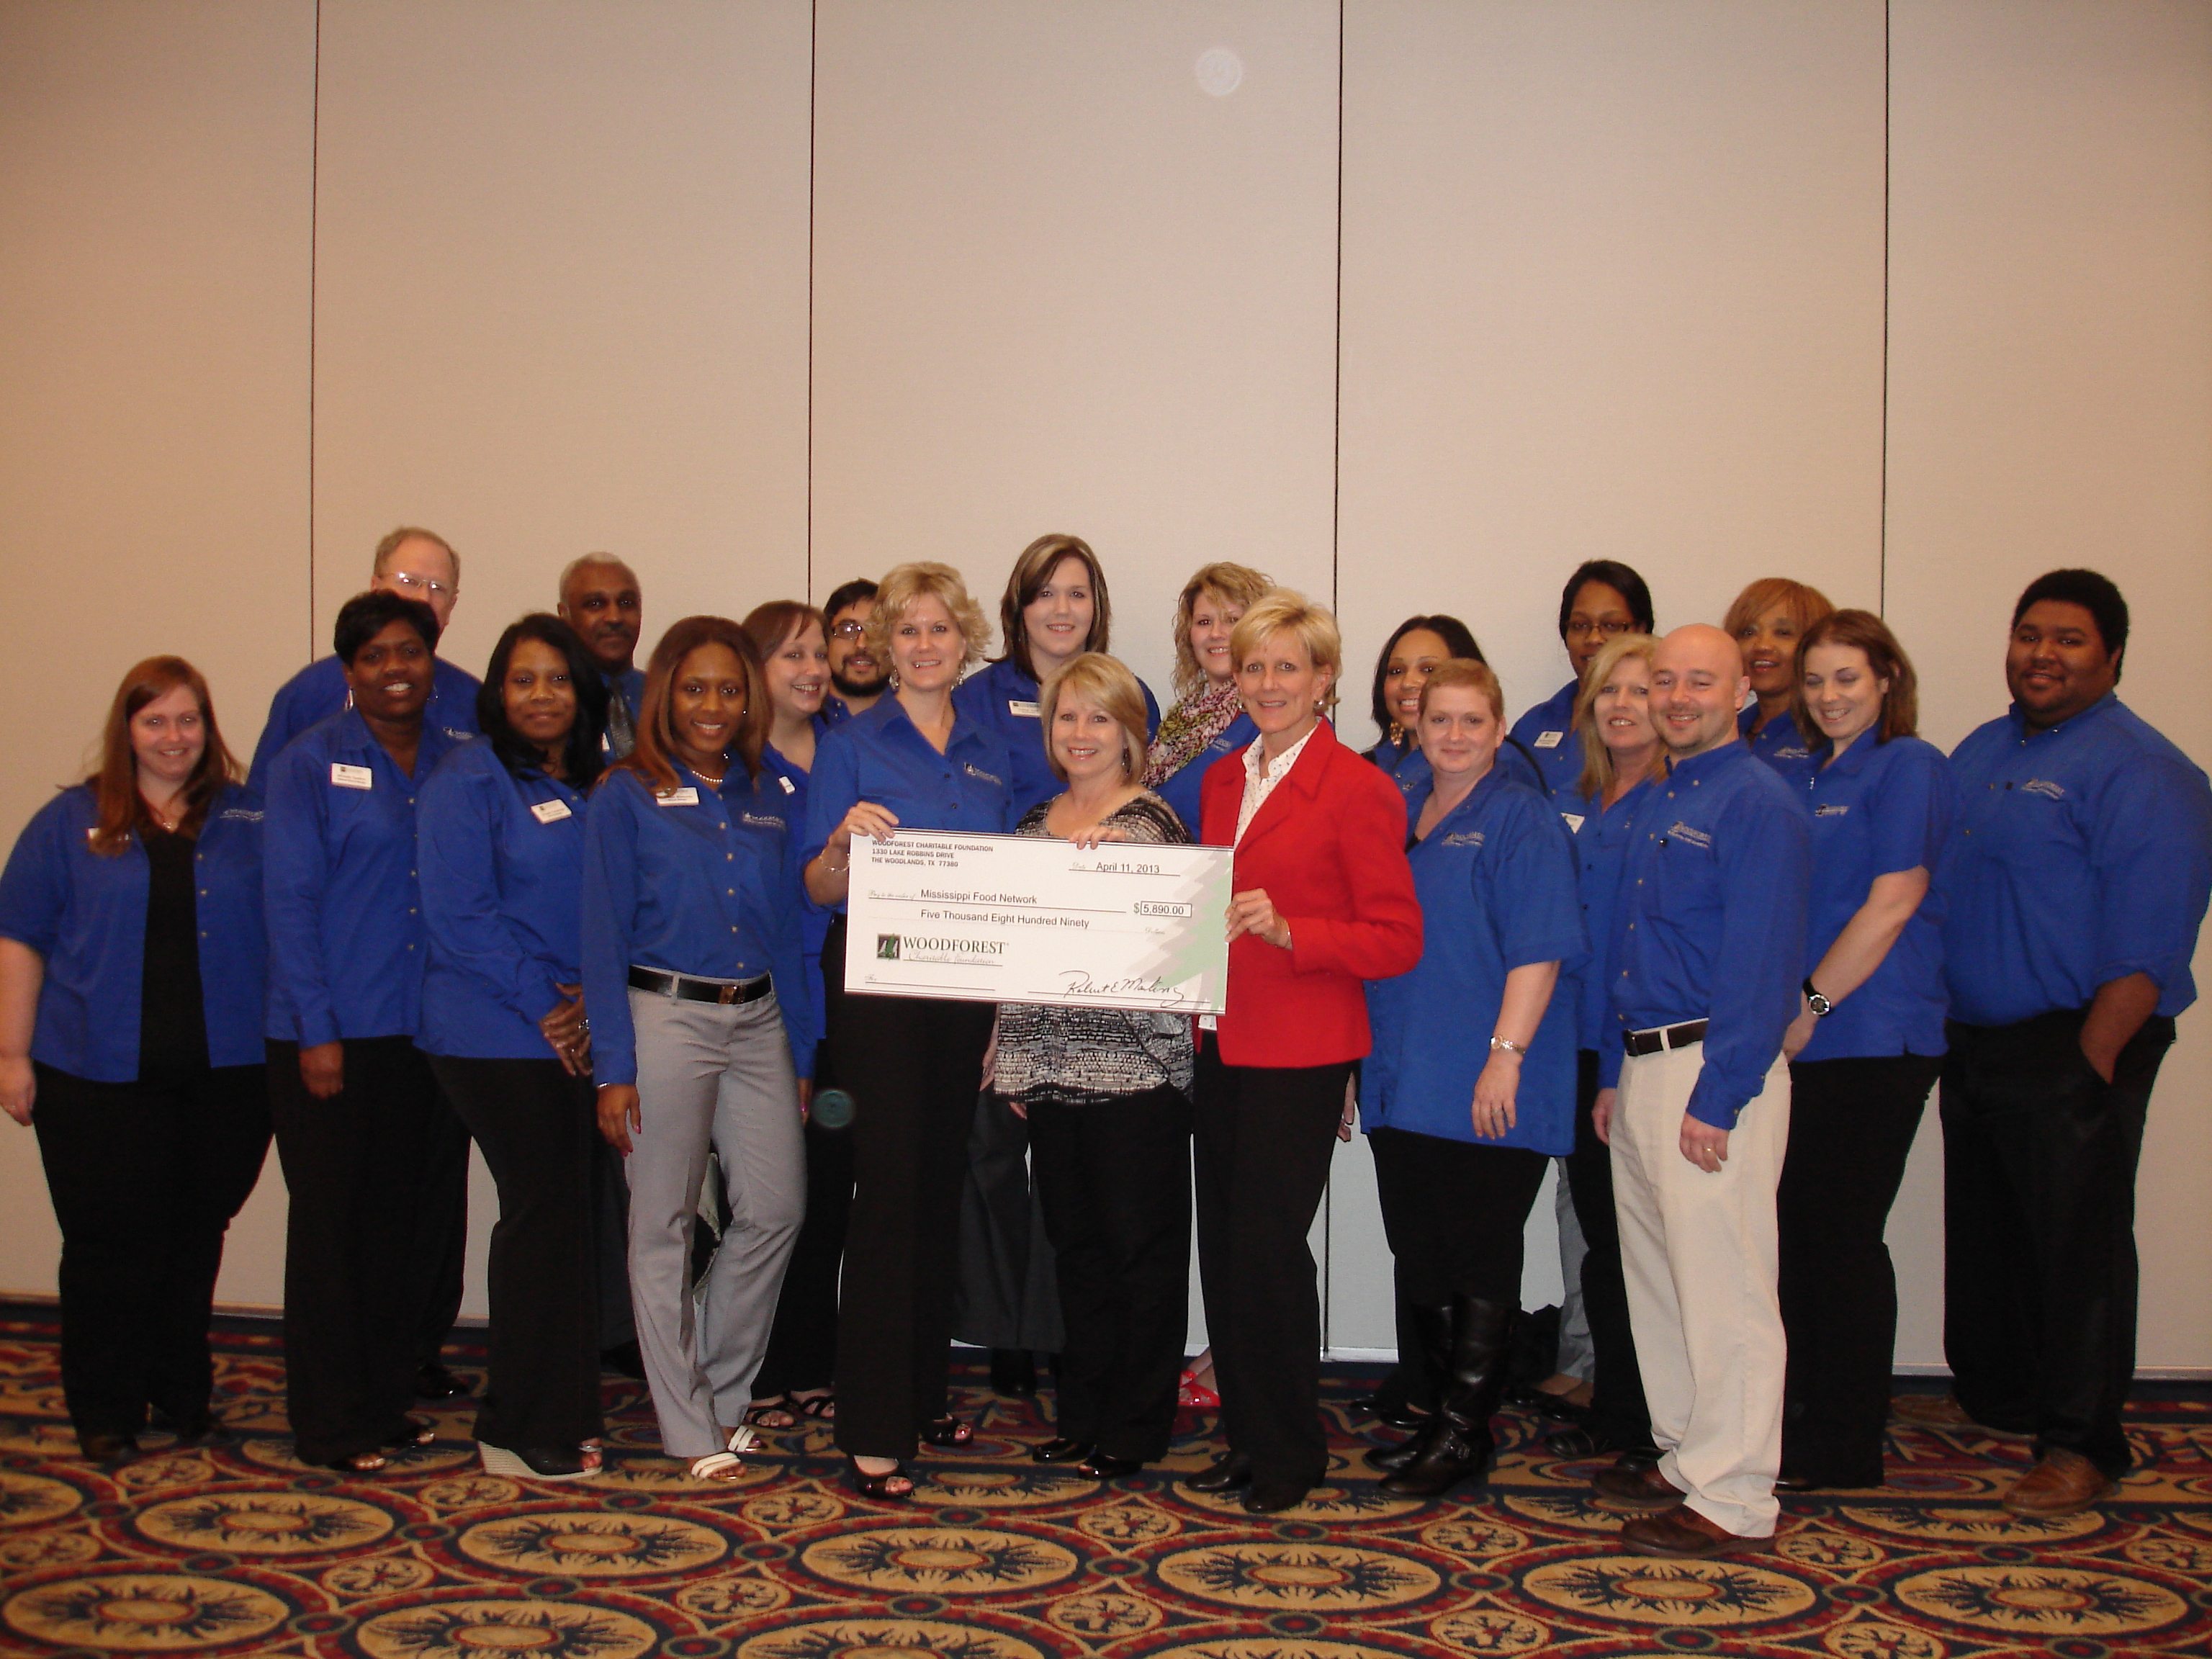 Mississippi Food Network receives $5,890 from Woodforest Charitable Foundation.